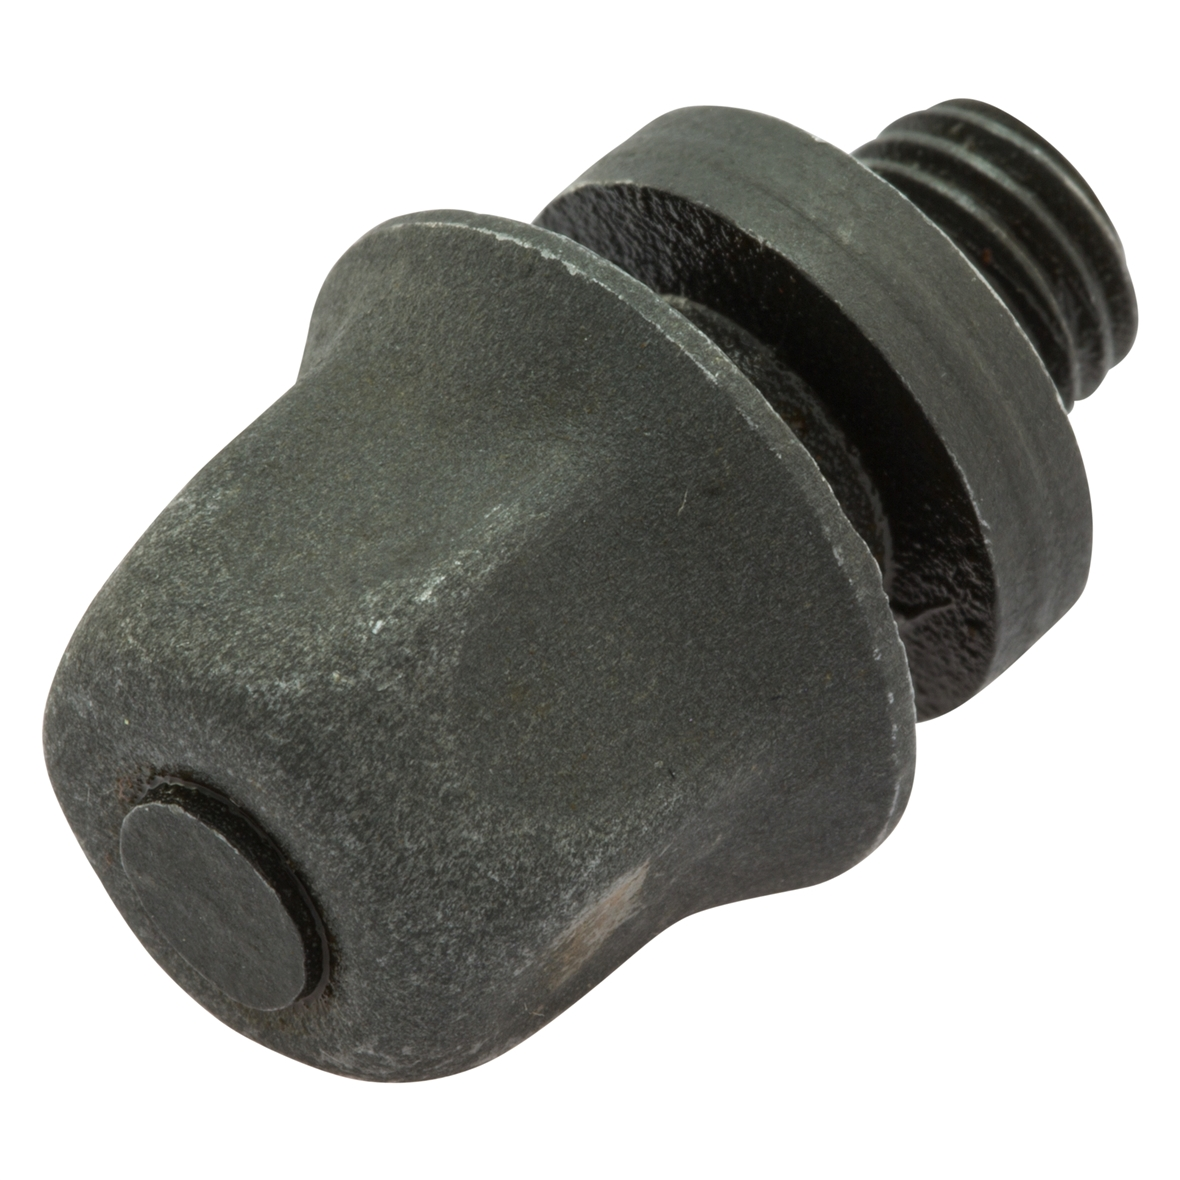 Product Image for 'Ventilation Screw, clutch coverTitle'